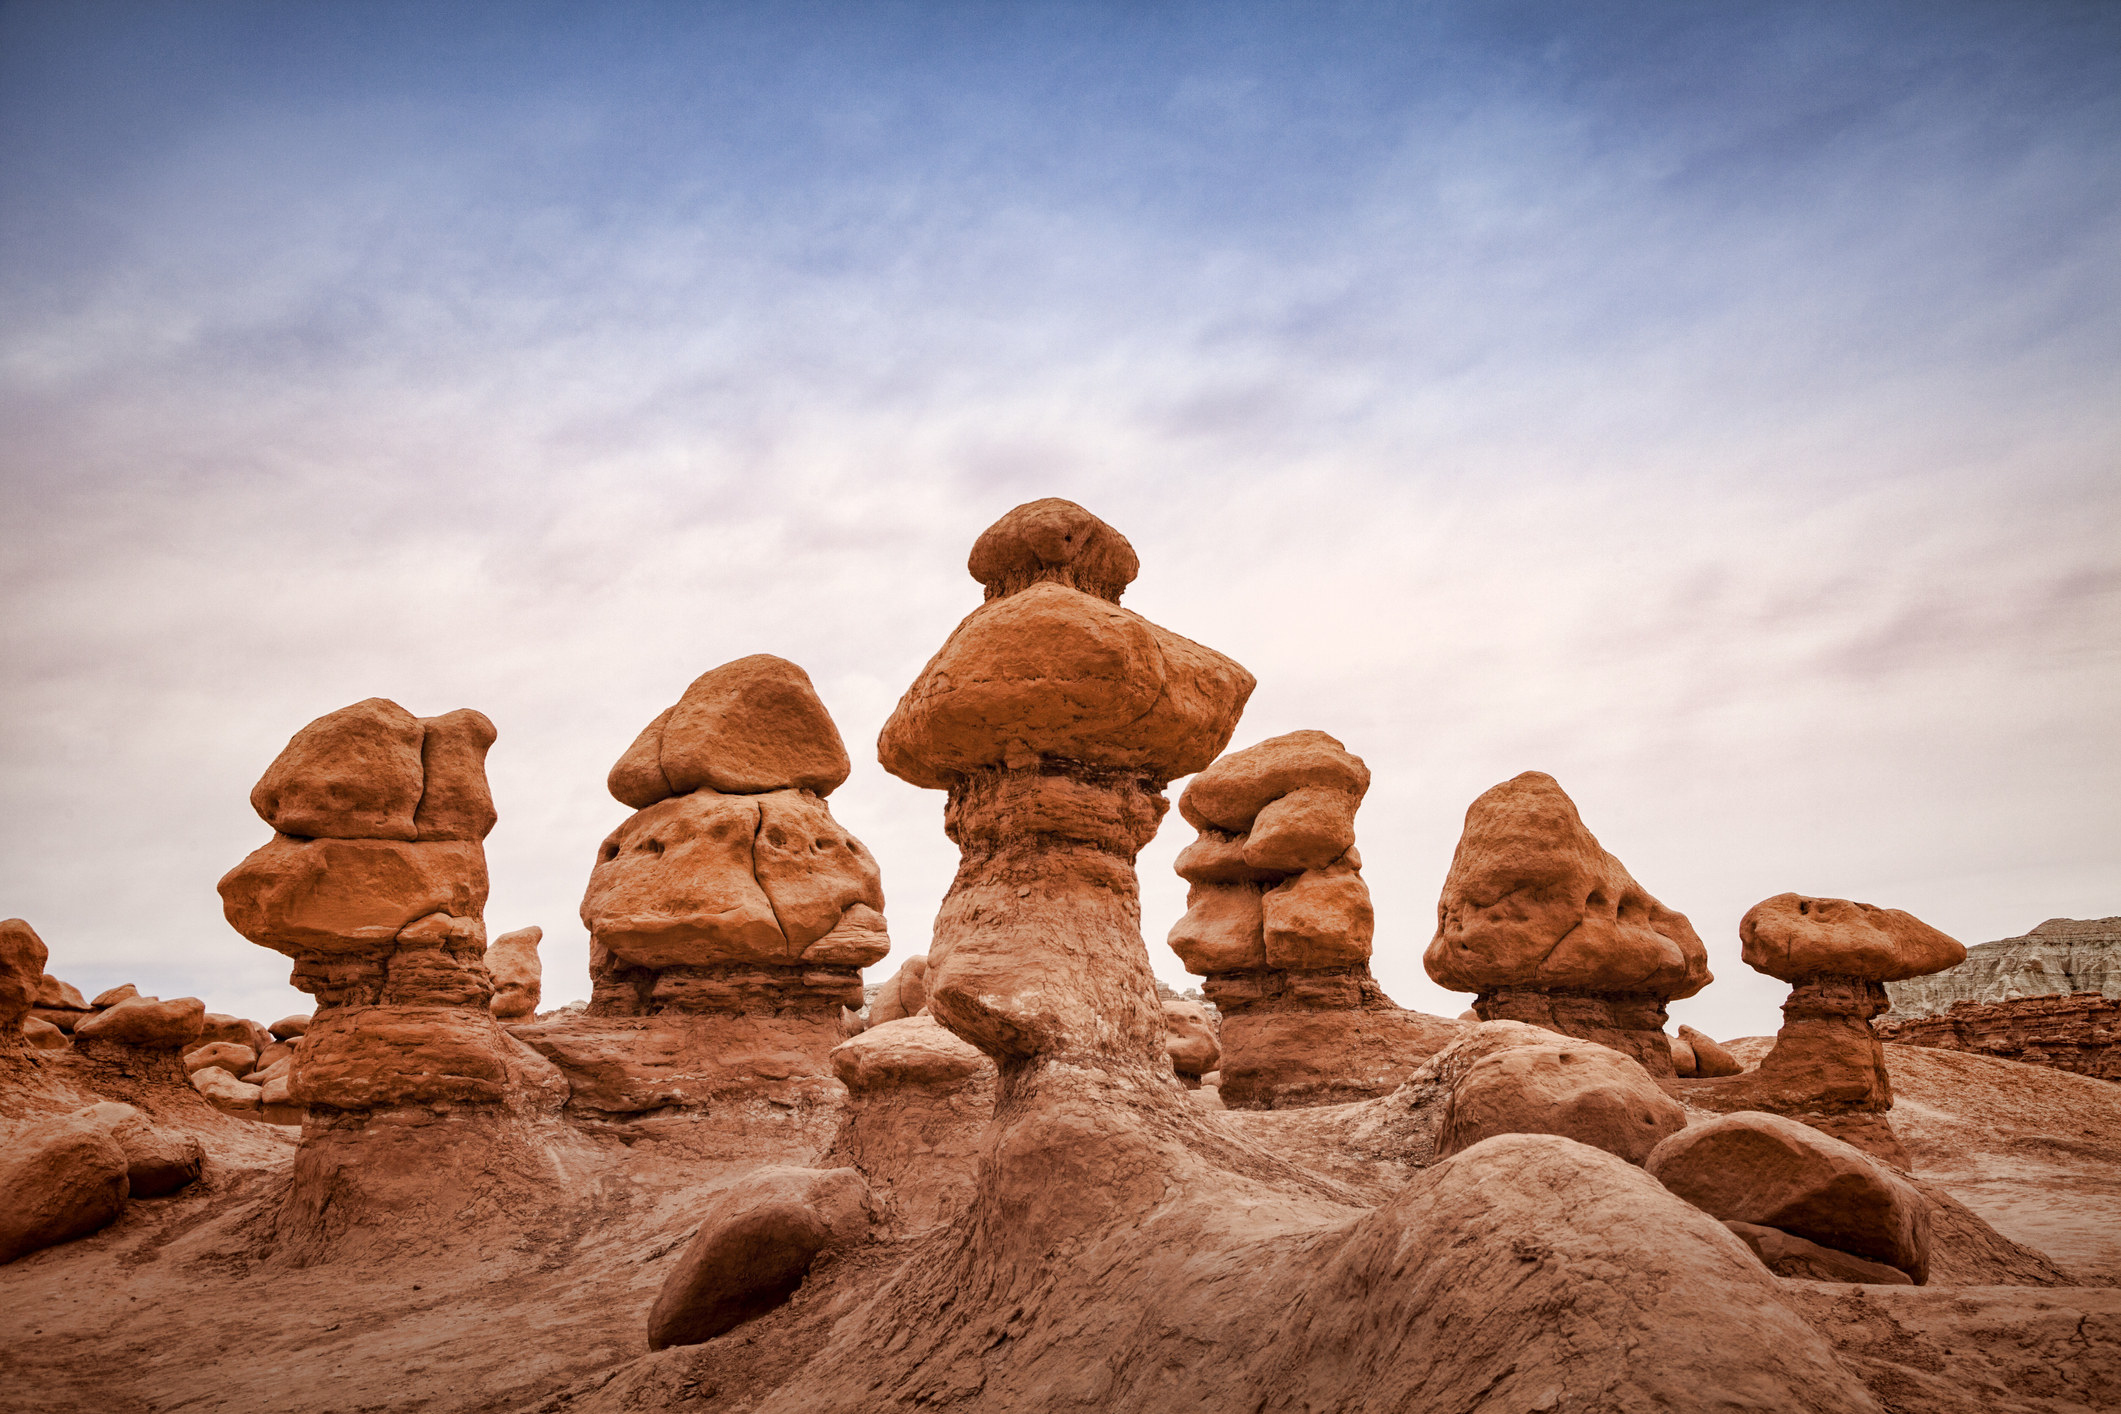 a cluster of Hoodoos — vertical rock formations that look like rocks stacked on top of each other — in Goblin Valley State Park